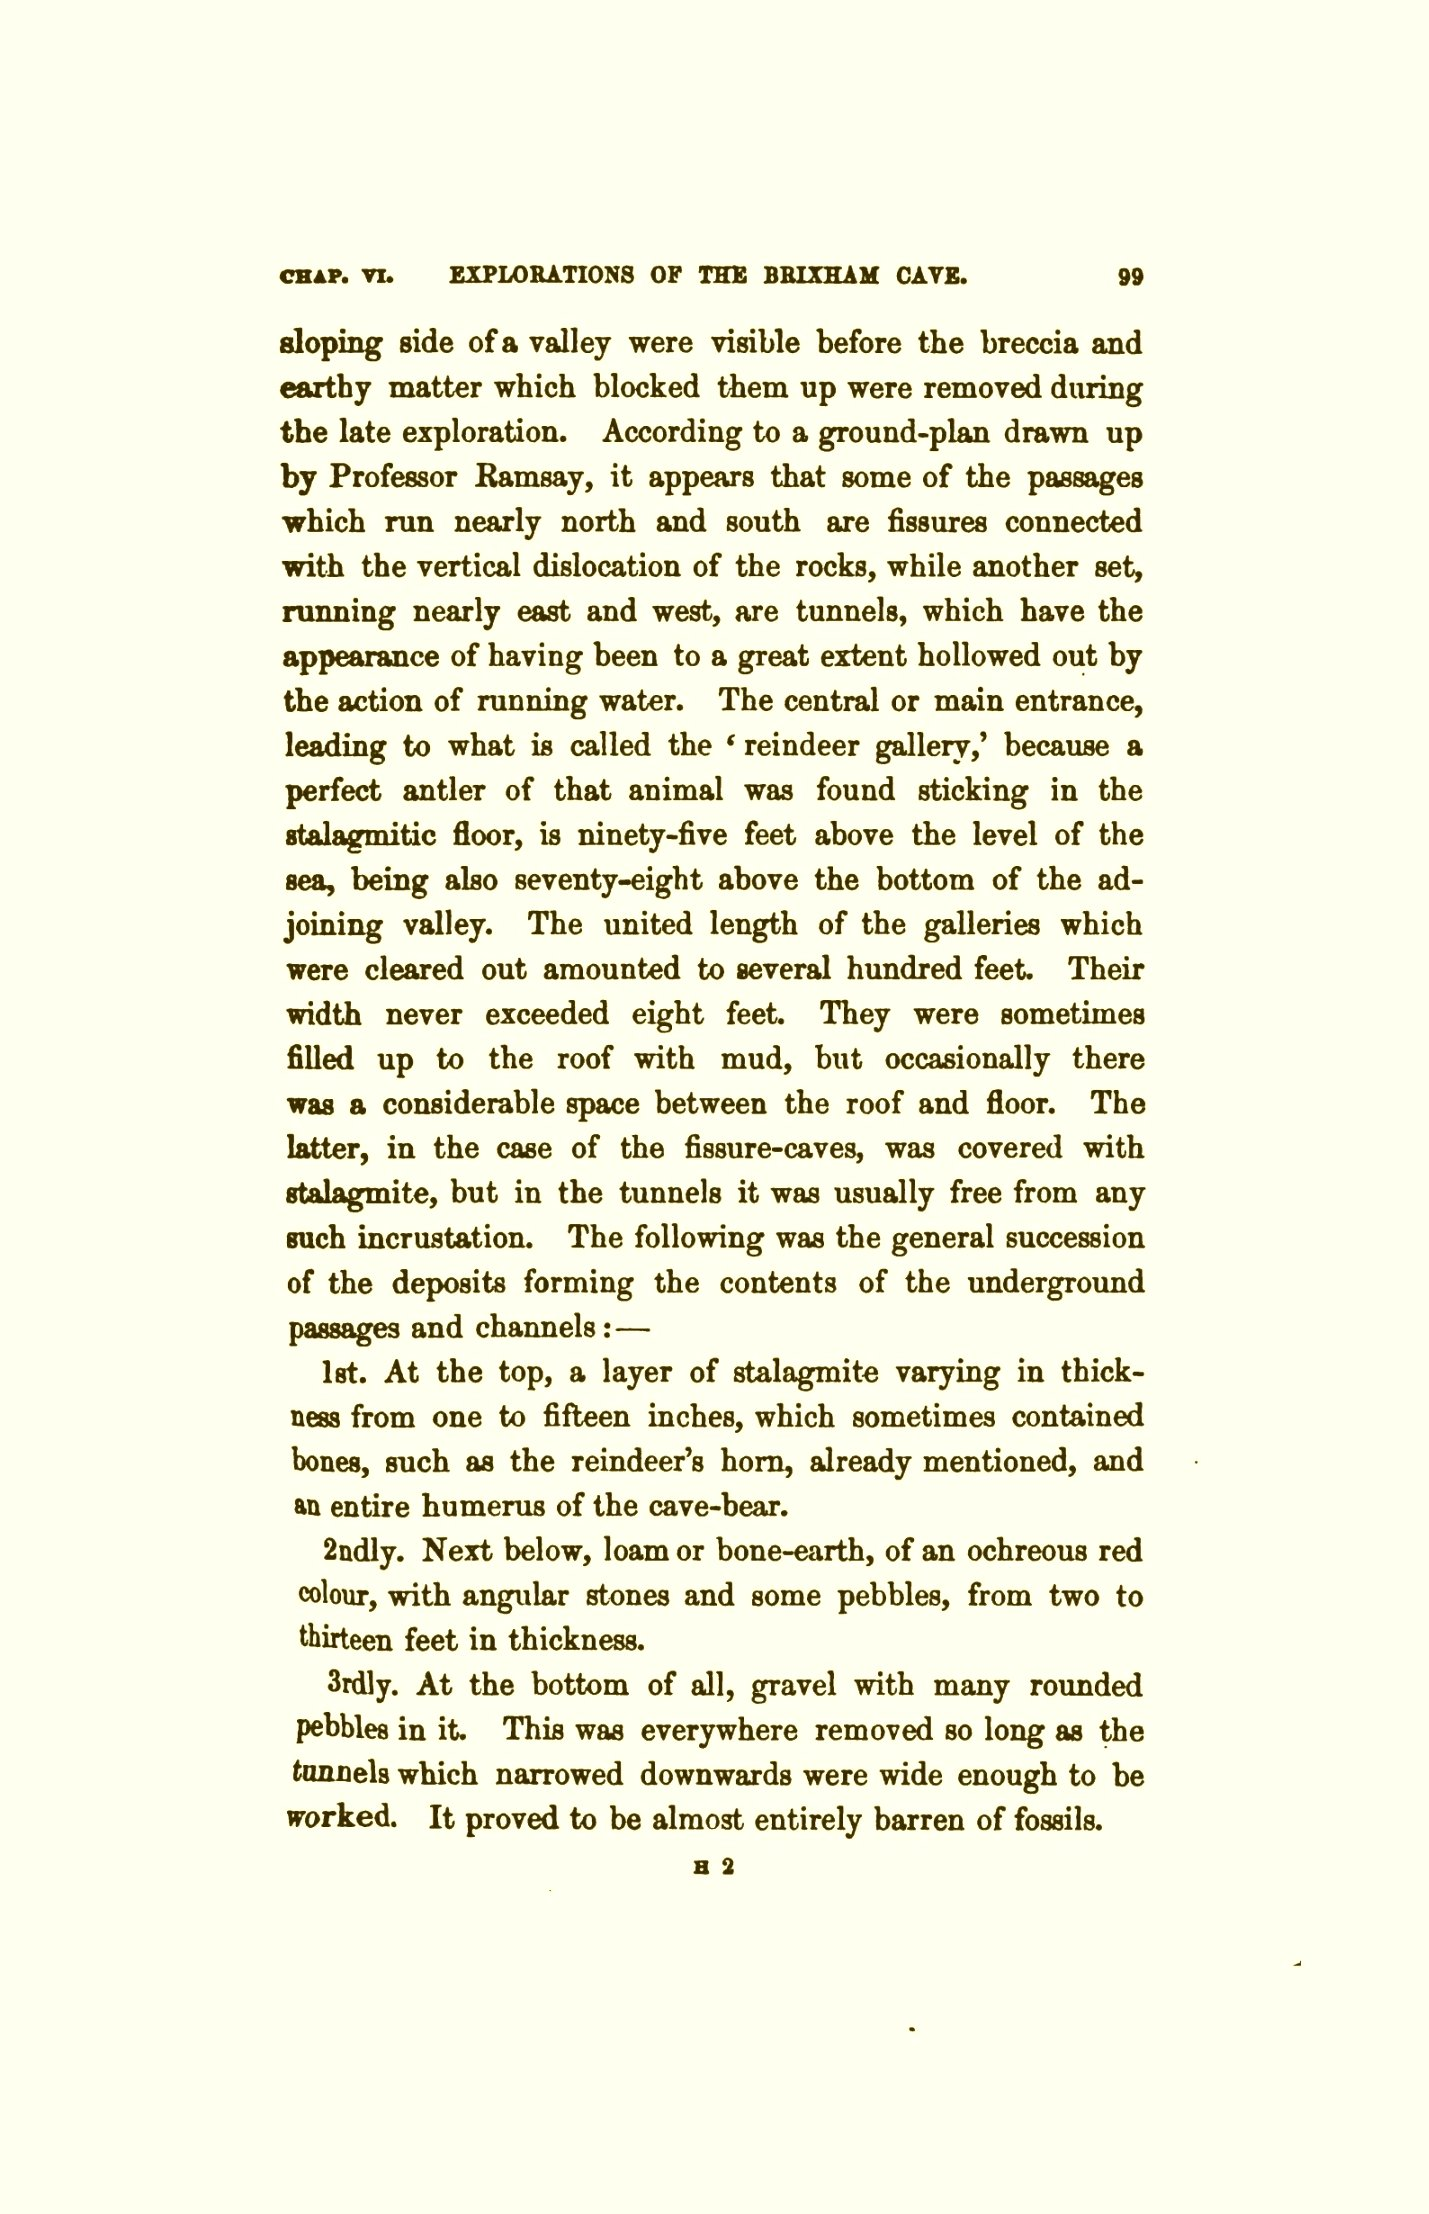 Lyell, Charles  1863  The geological evidences of the antiquity of